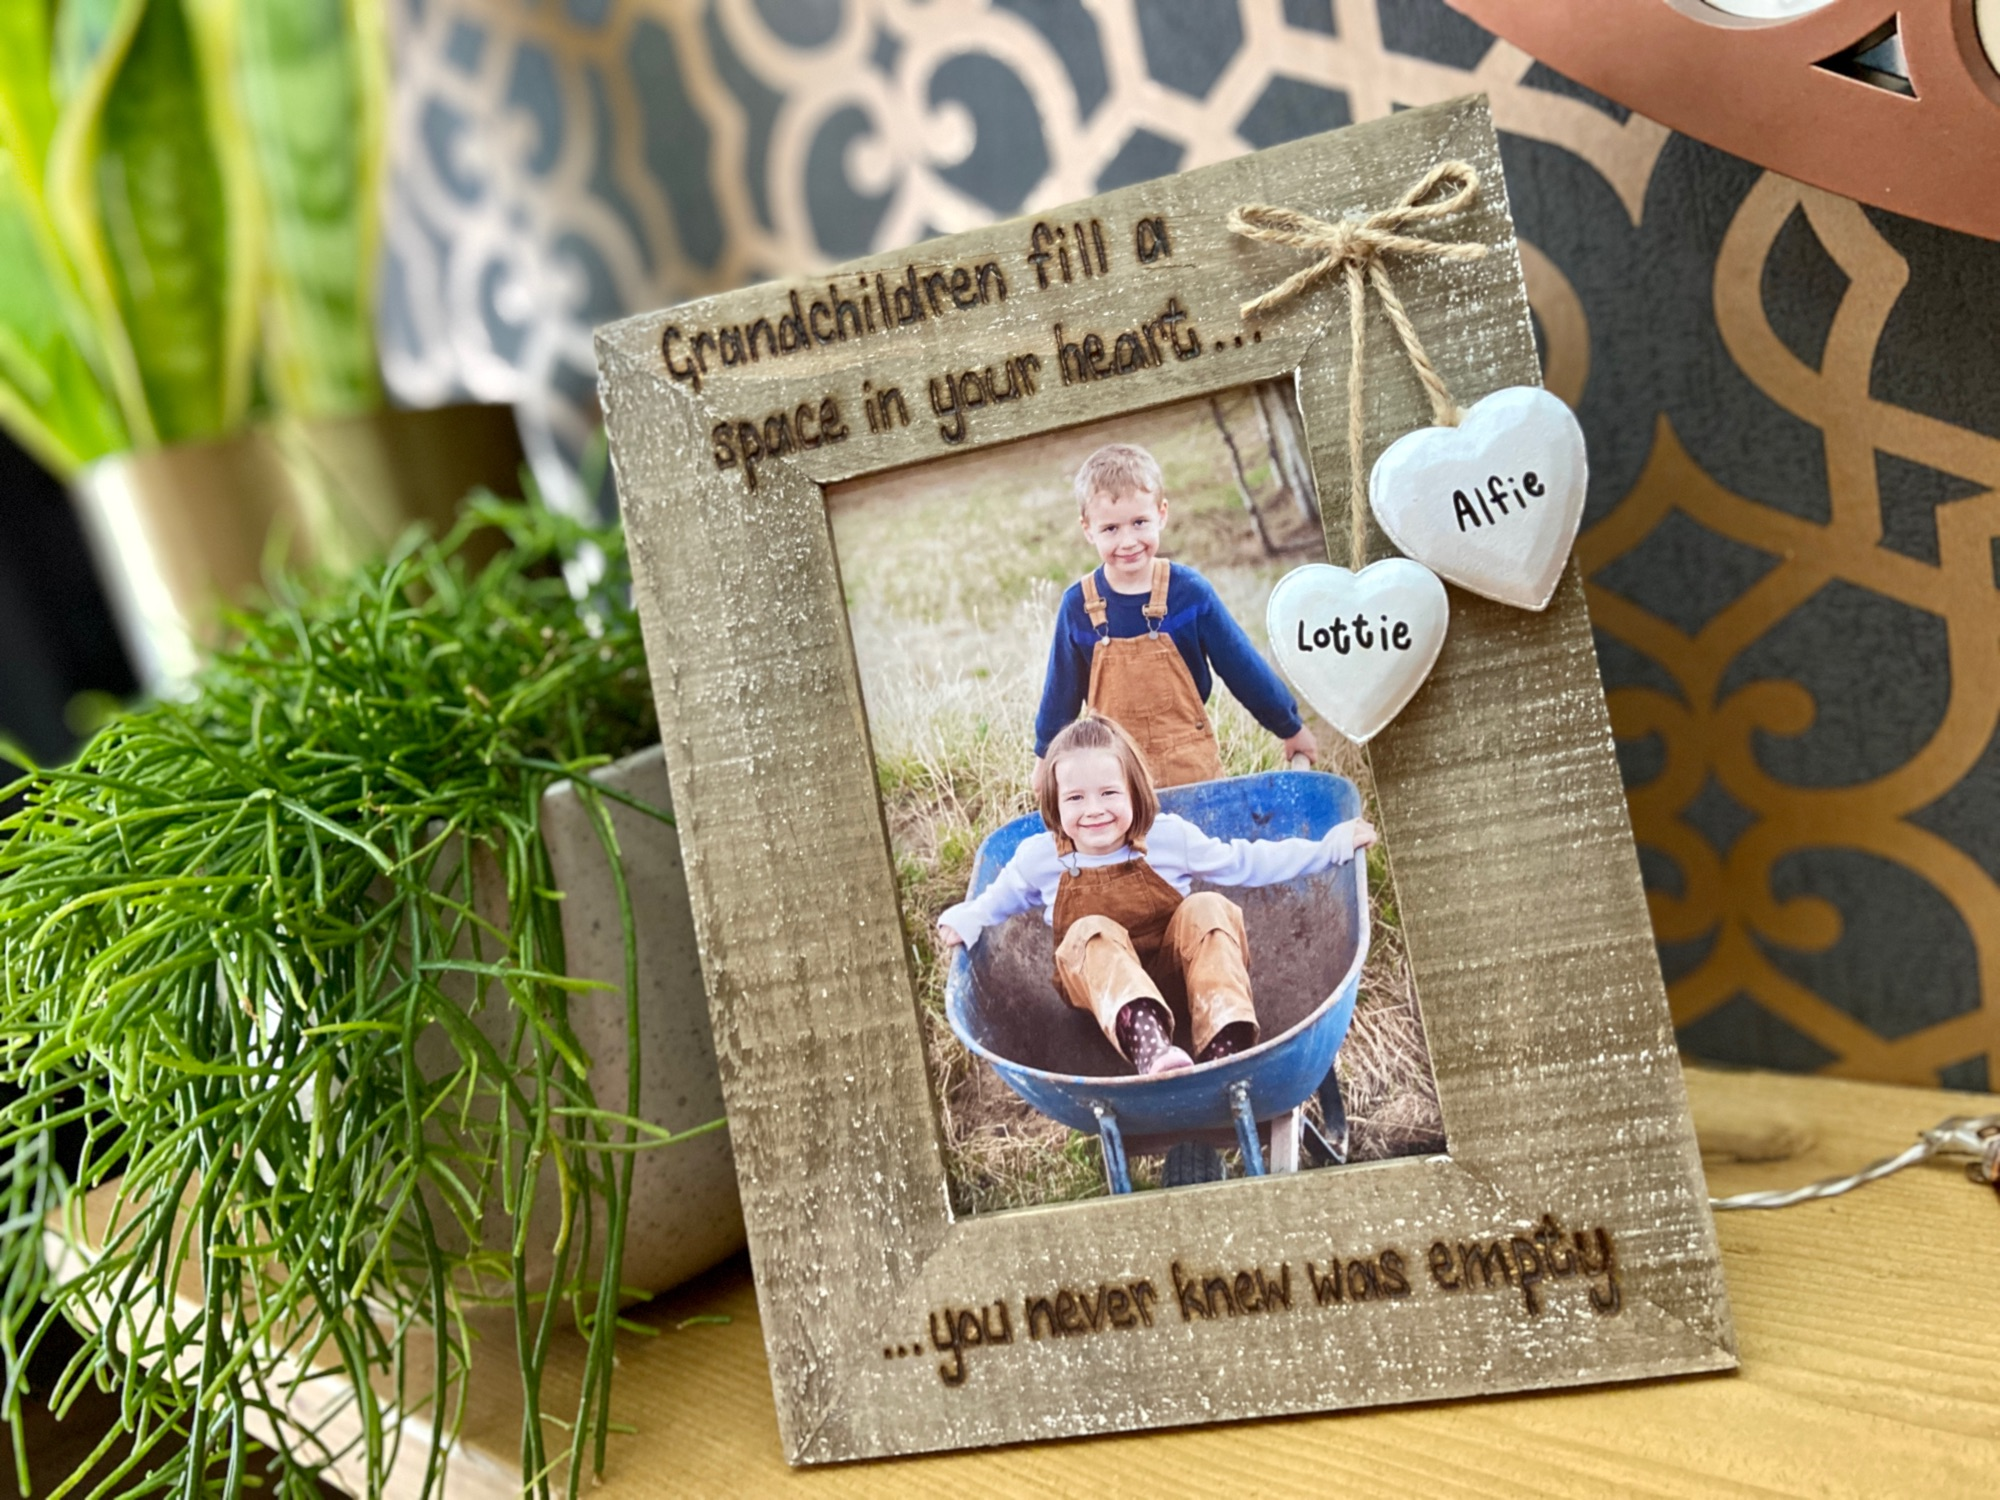 Grandchildren fill a space in your heart  Personalised Photo Frame